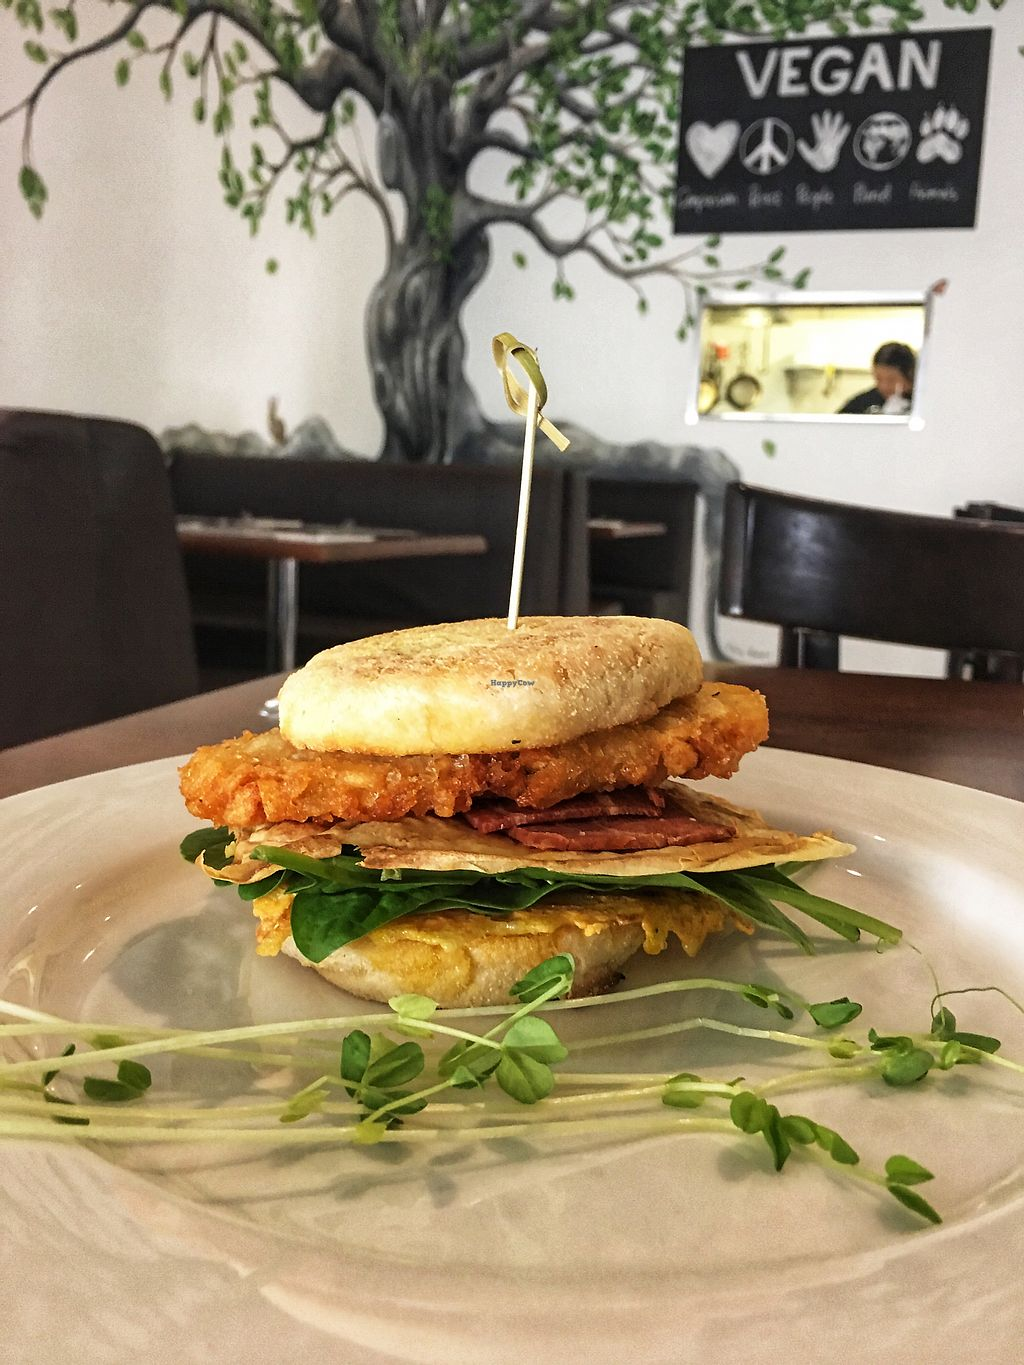 """Photo of The Green Edge Store and Cafe  by <a href=""""/members/profile/Carmentx"""">Carmentx</a> <br/>Bacon and egg McMuffin  <br/> April 12, 2018  - <a href='/contact/abuse/image/19791/384235'>Report</a>"""